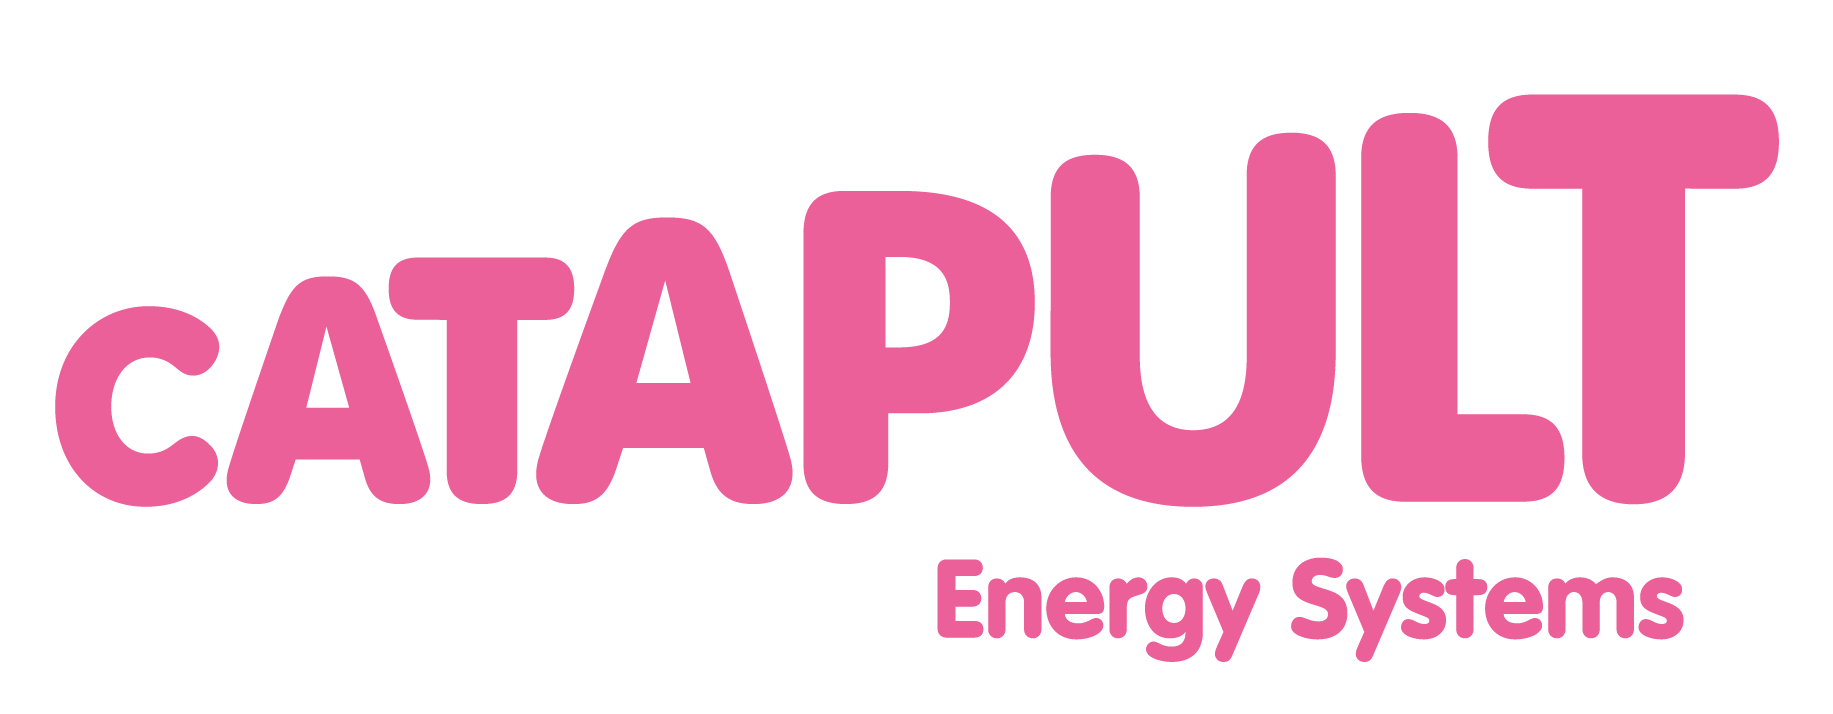 FRED partner Energy Systems Catapult logo